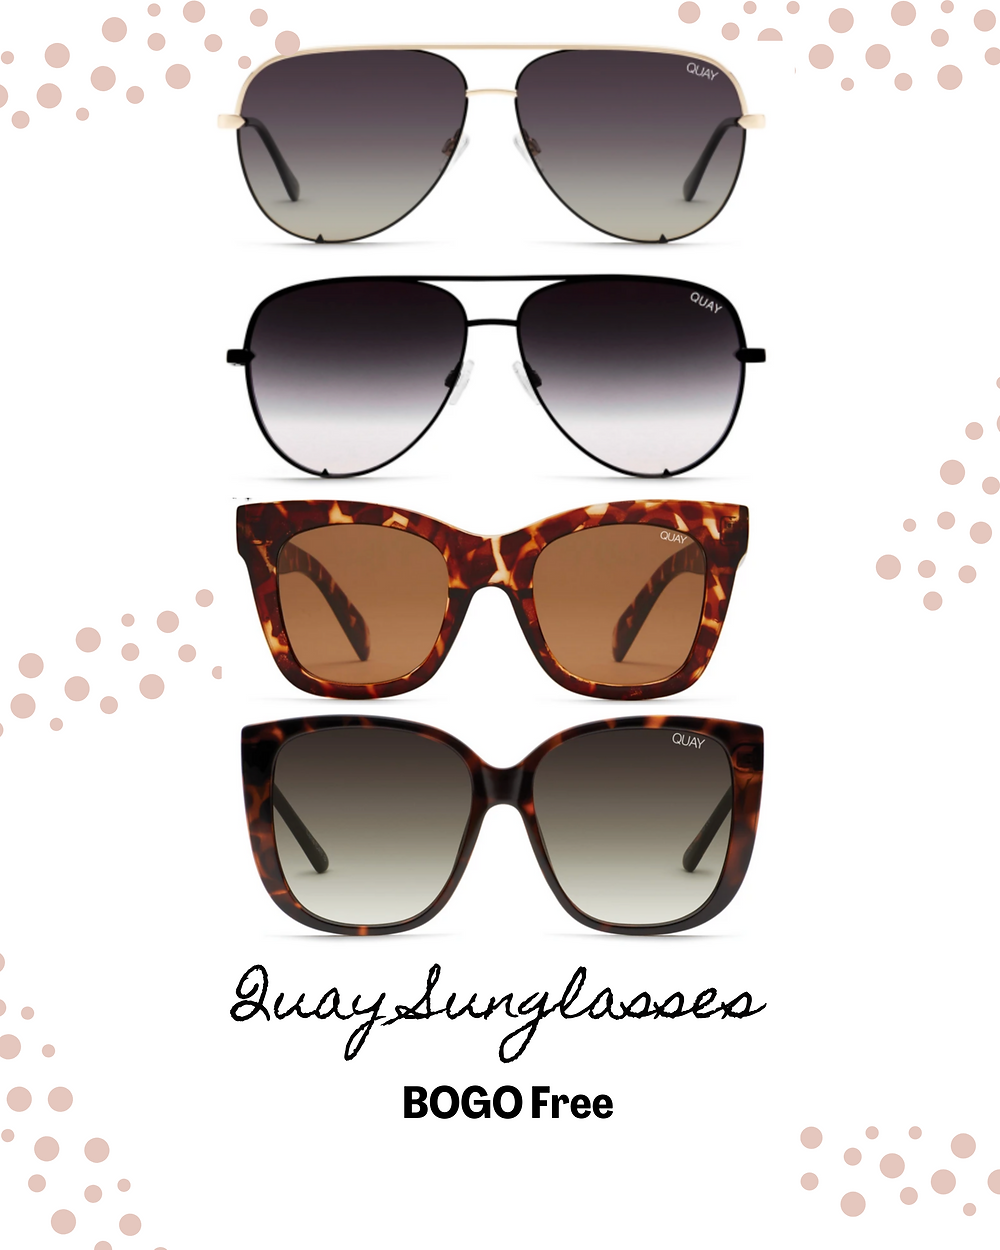 BOGO FREE. Black Friday sale. sale. sunglass sale. Quay sunglasses